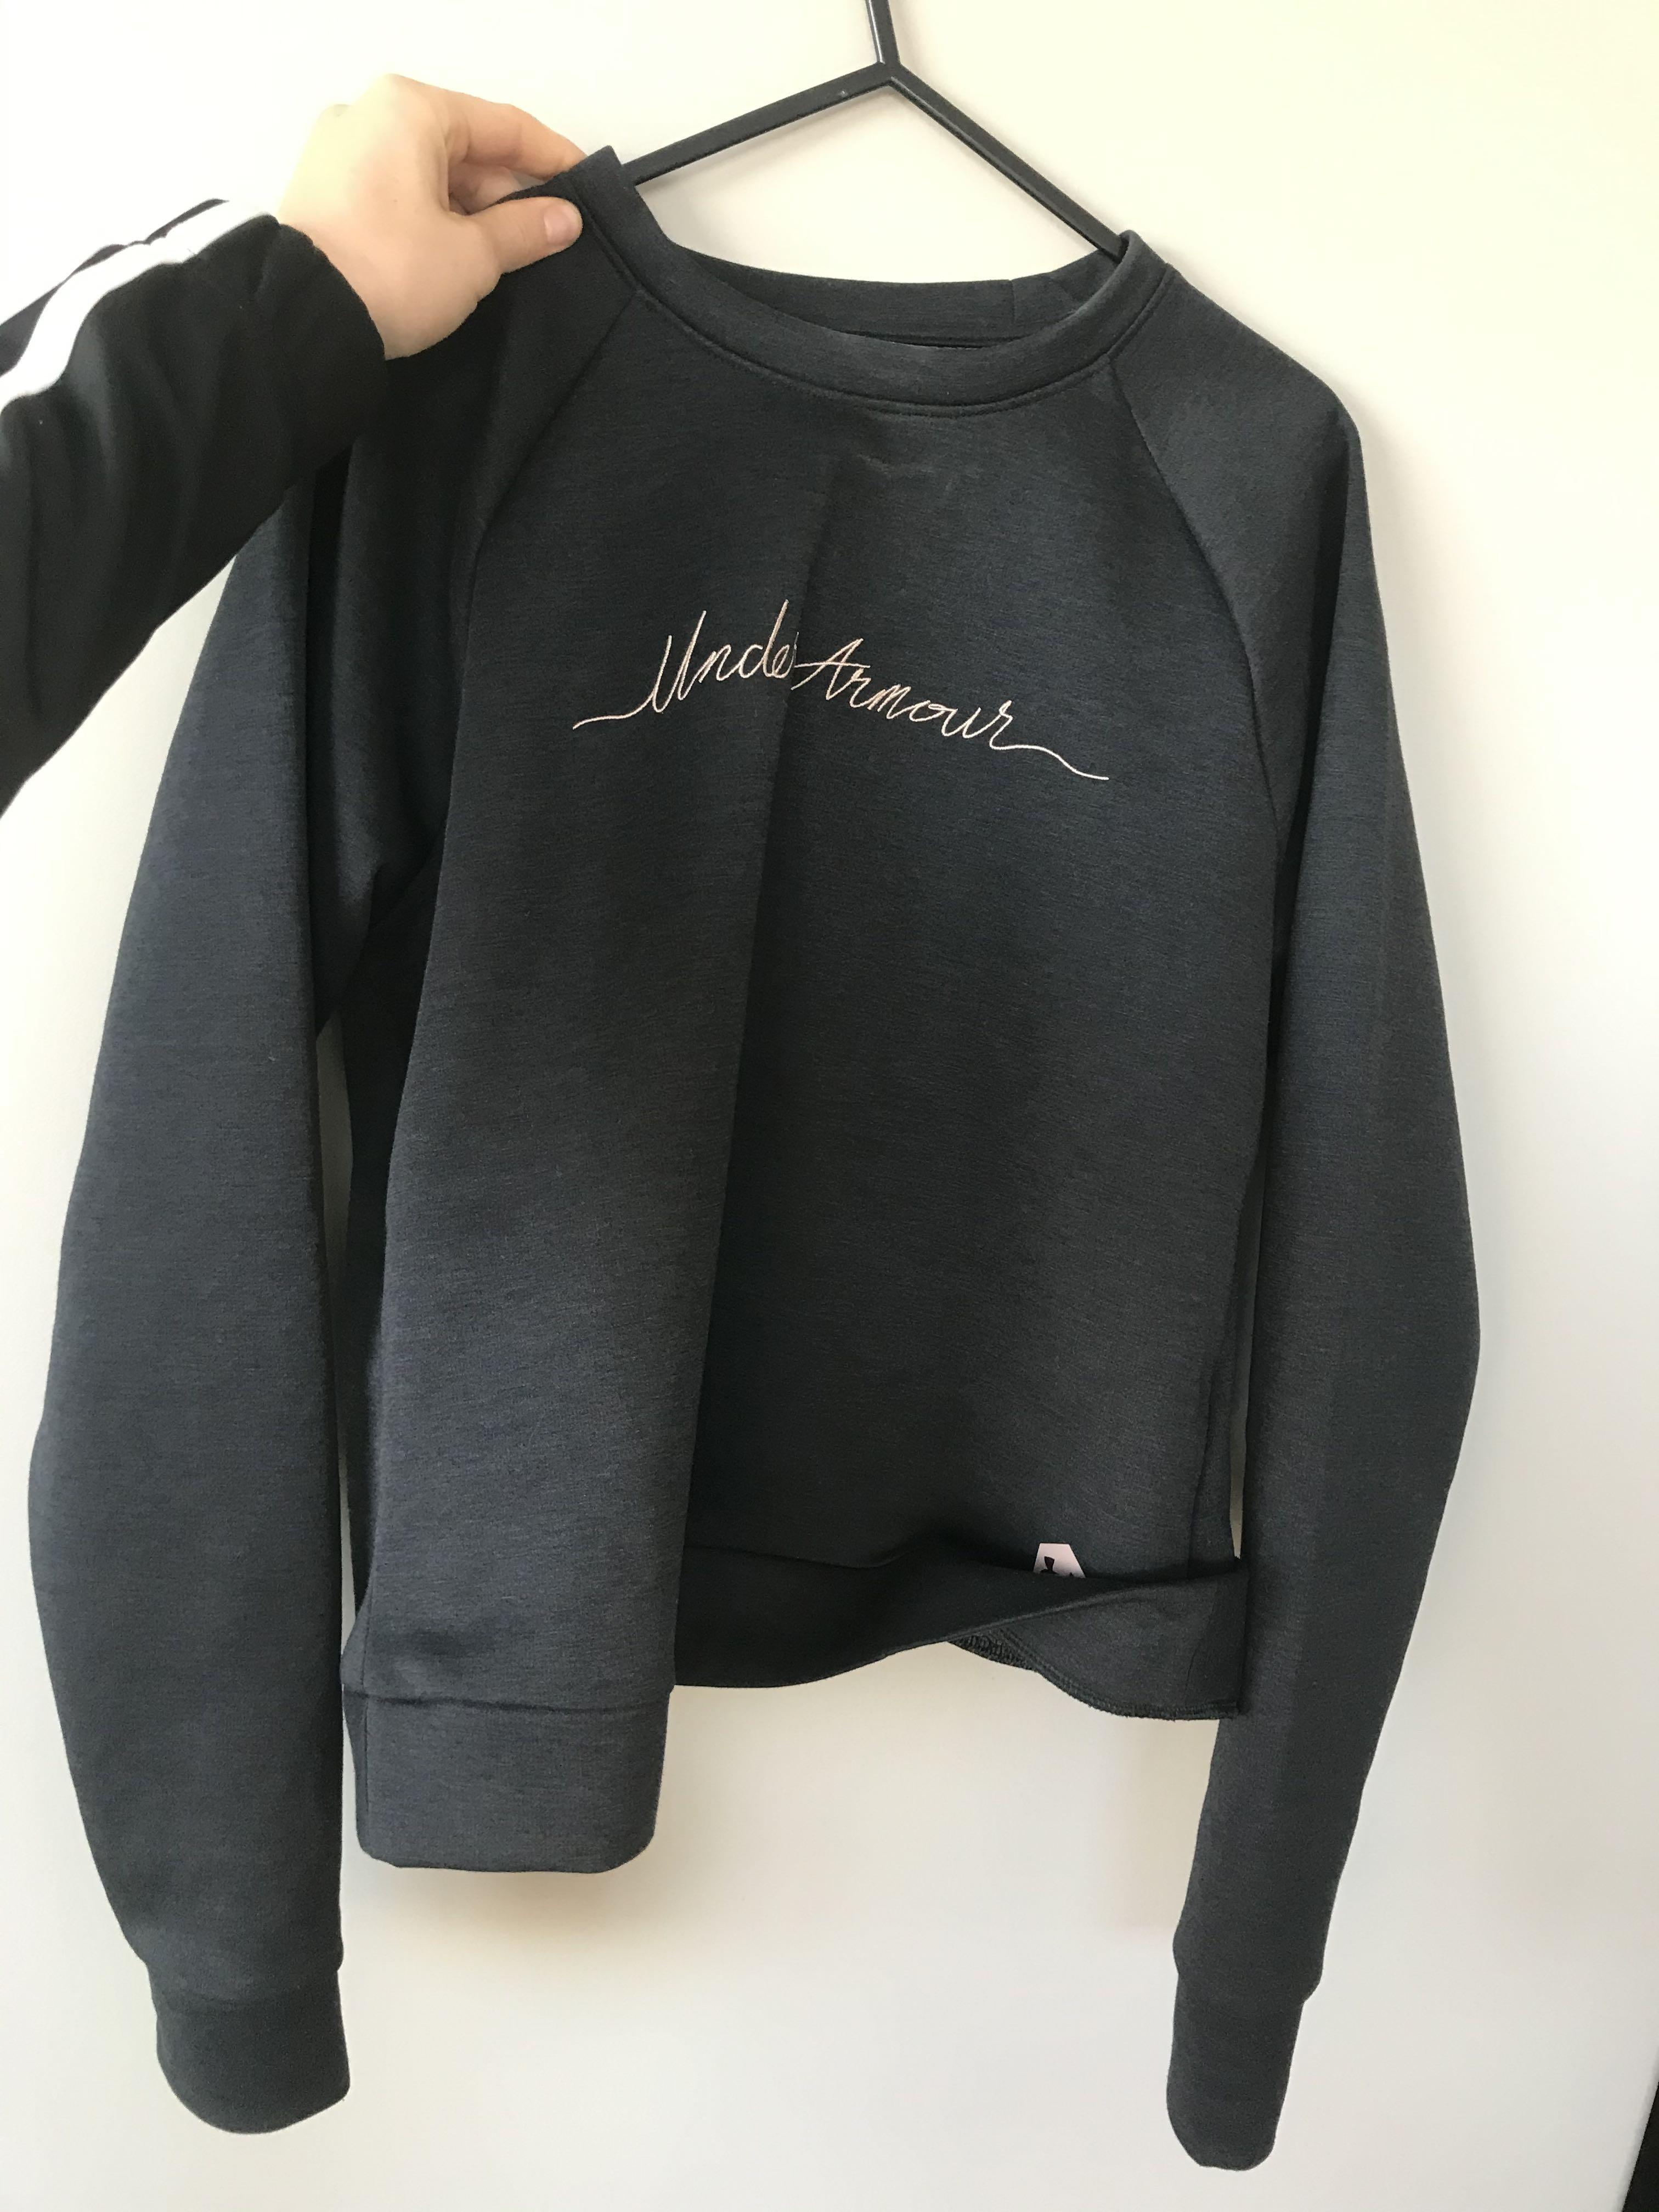 Under Armour Hoodie (New)